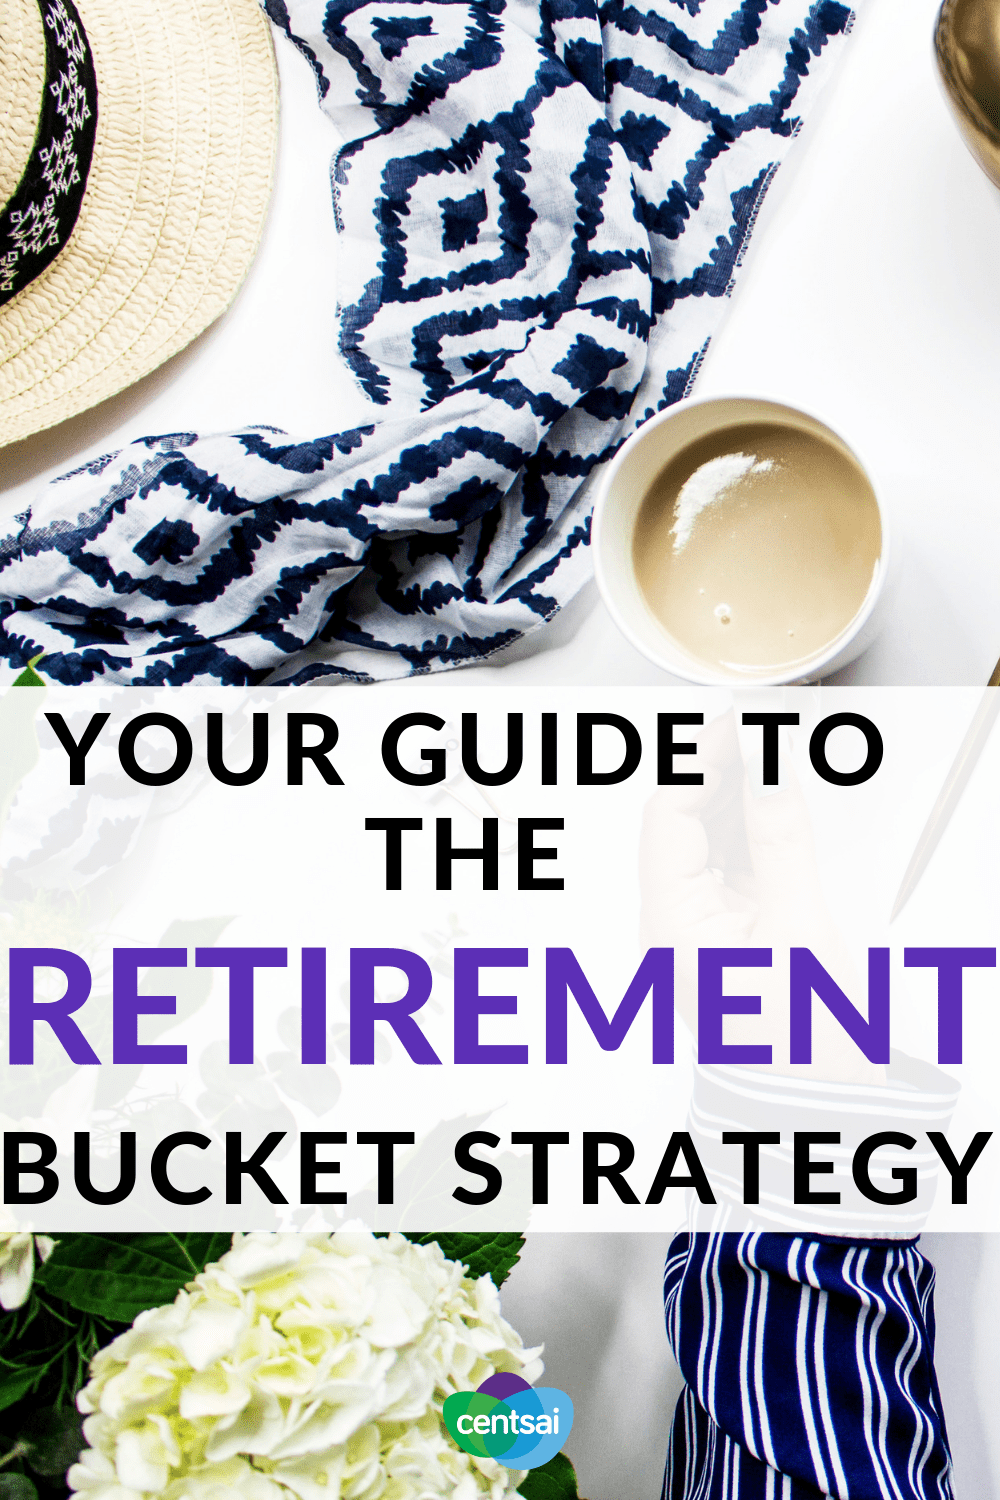 Your Guide to the Retirement Bucket Strategy. Not sure of the best way to plan for retirement? Get the lowdown on the retirement bucket strategy and see if it's the right method for you. #retiremtn #strategy #retirentplan #financialplanning